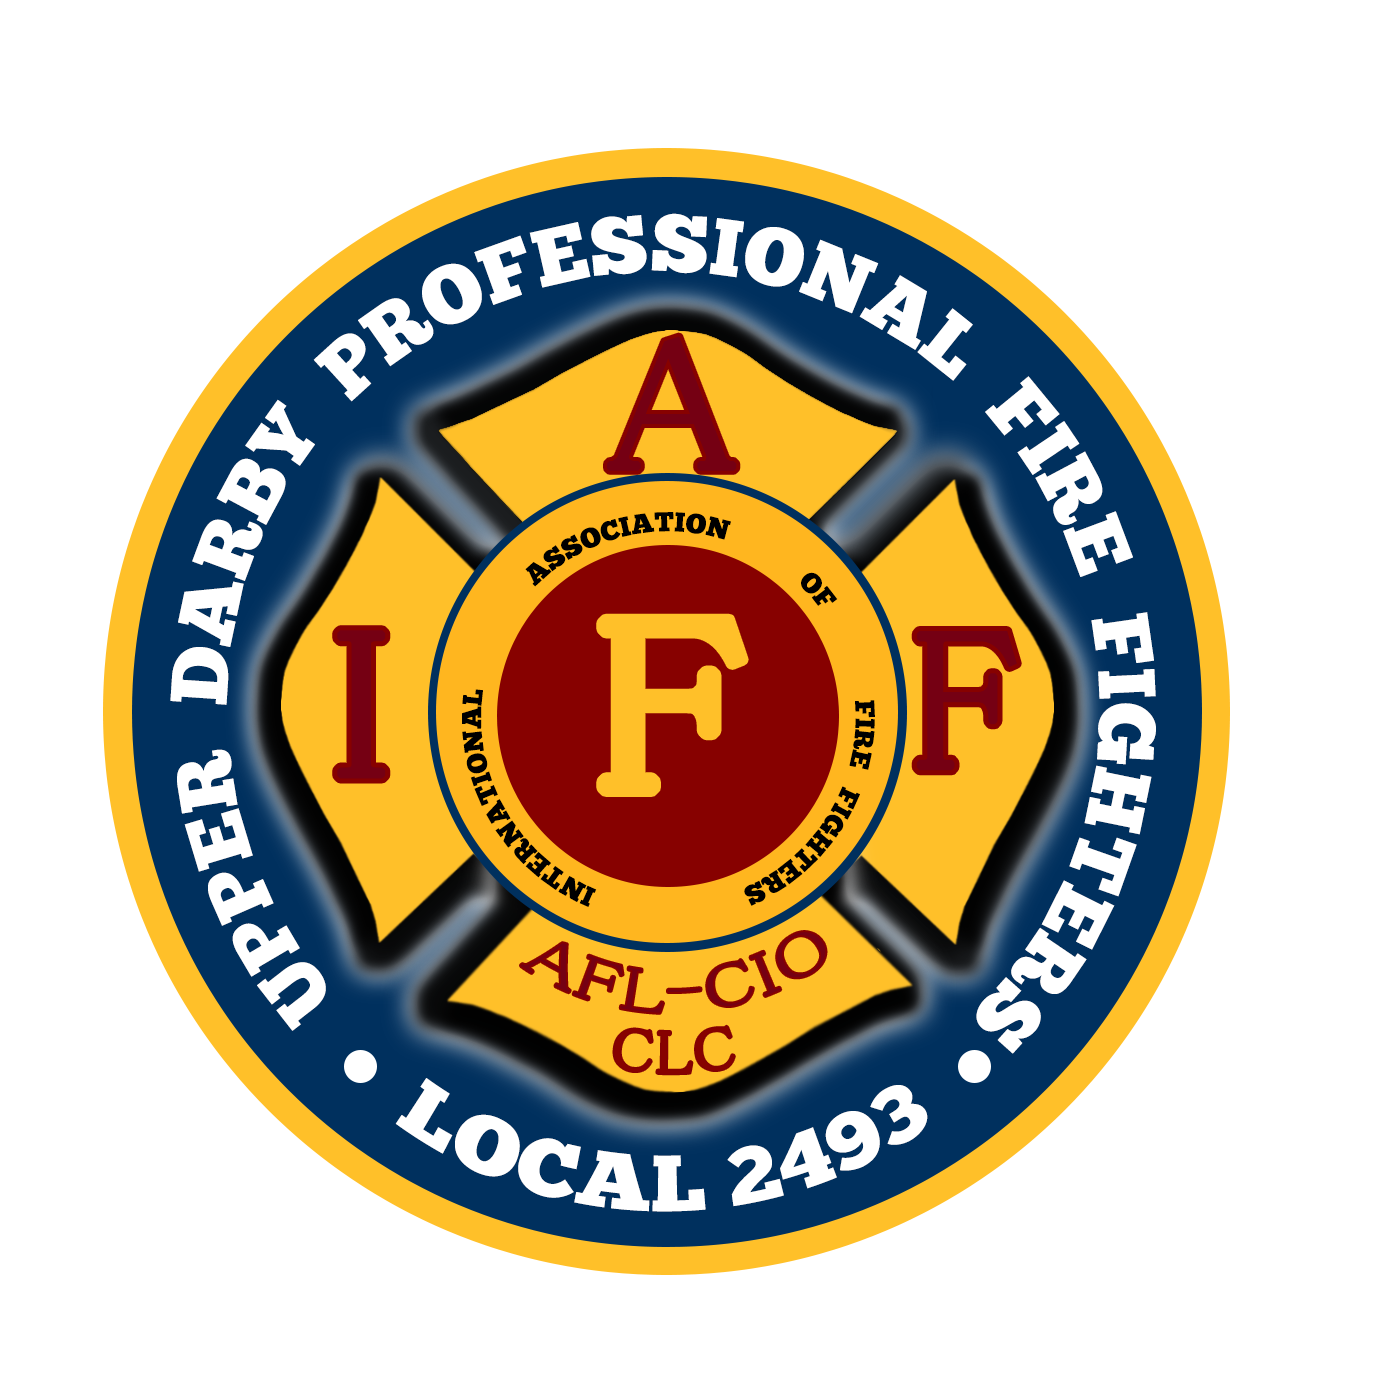 Upper Darby Professional Firefighters